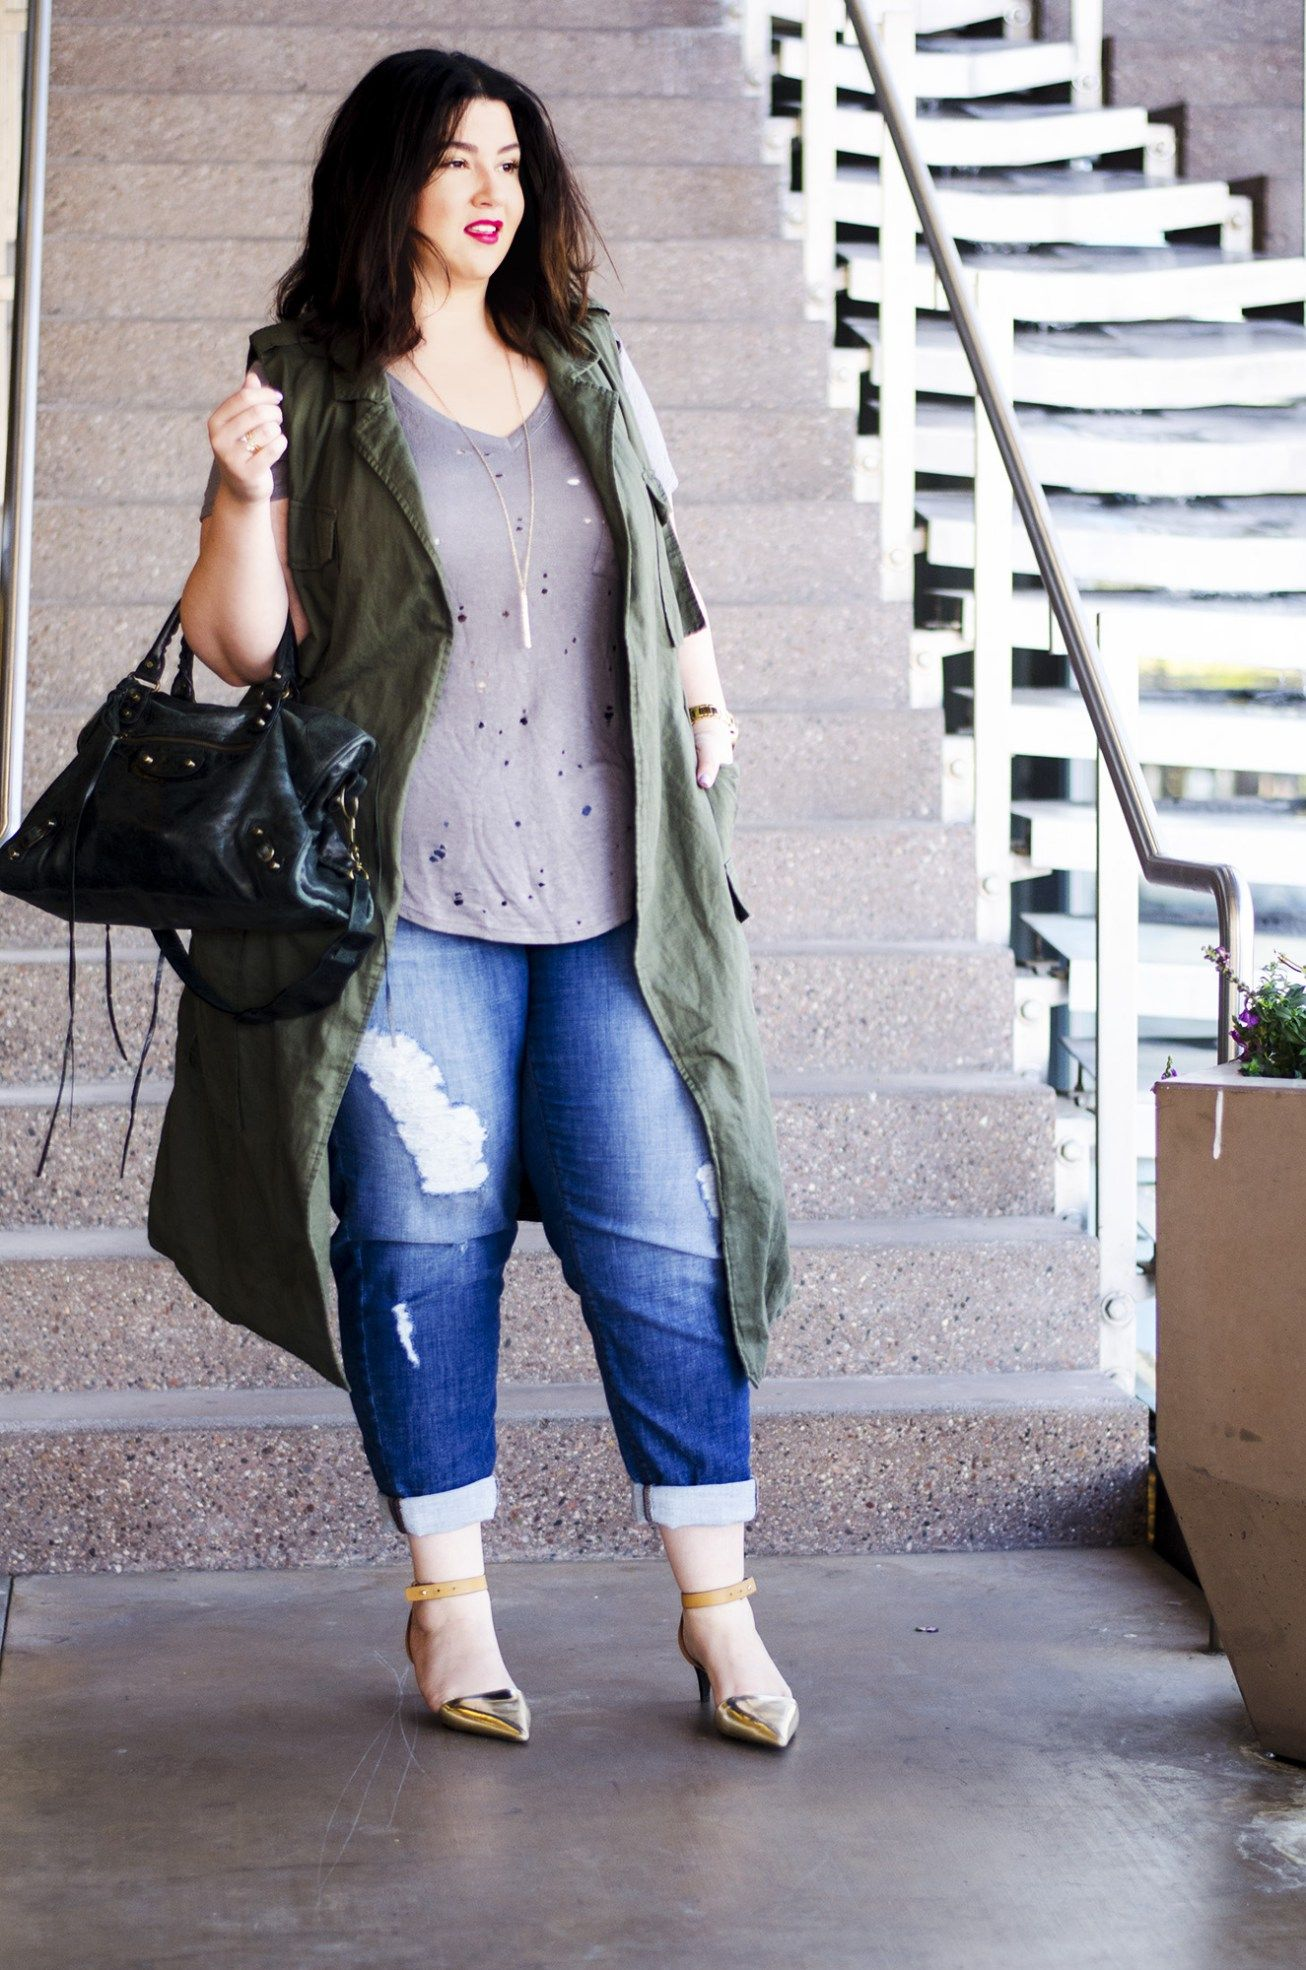 crystal coons target who what wear plus size ootd chic ...